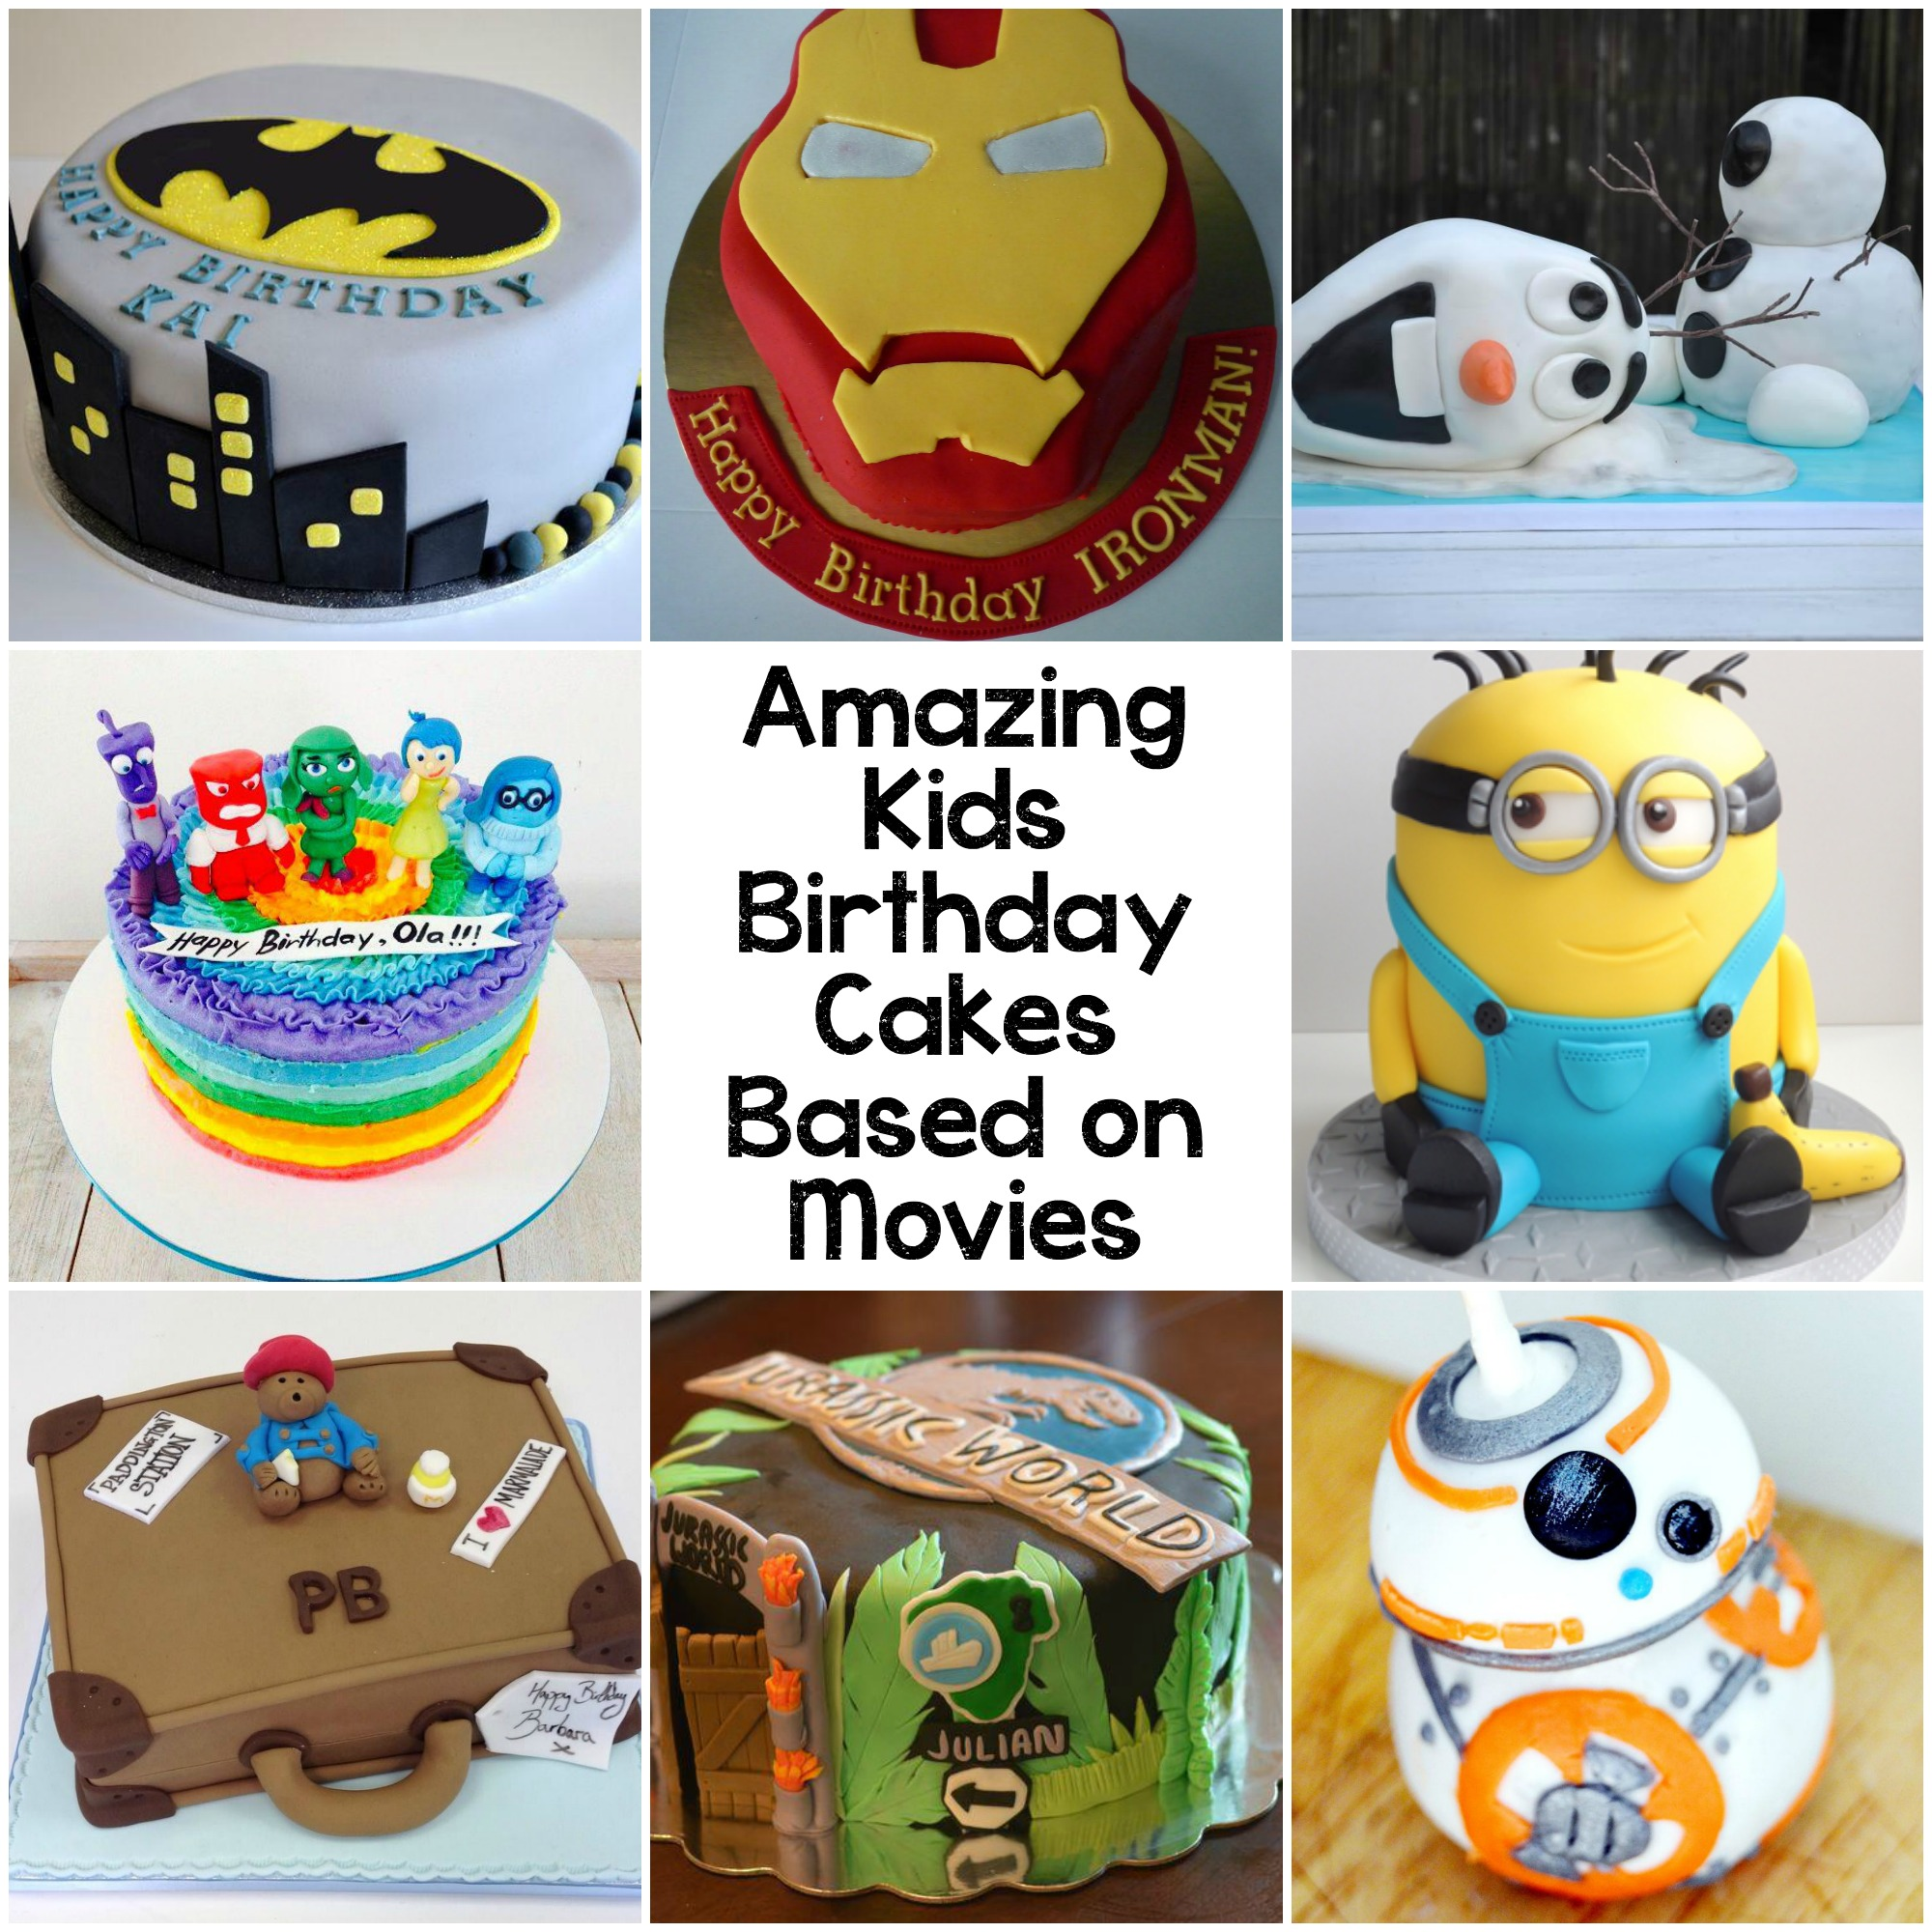 Kids birthday cakes based on movie characters